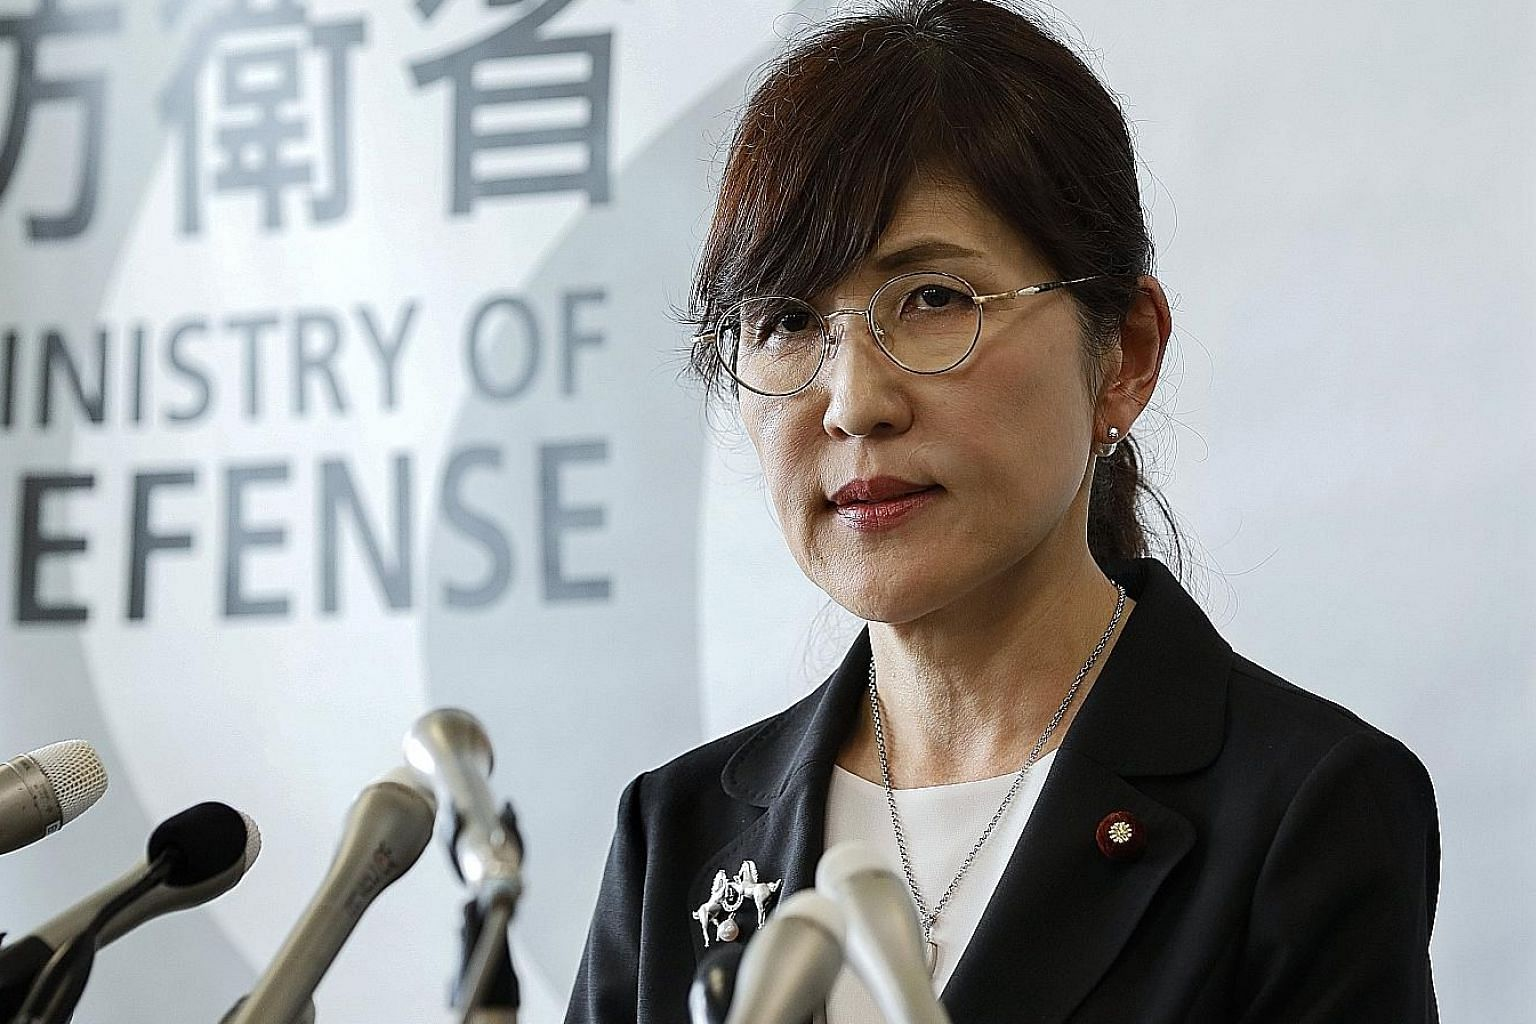 Defence Minister Tomomi Inada quit yesterday to take responsibility for a cover-up of daily activity logs of Japanese troops in South Sudan.